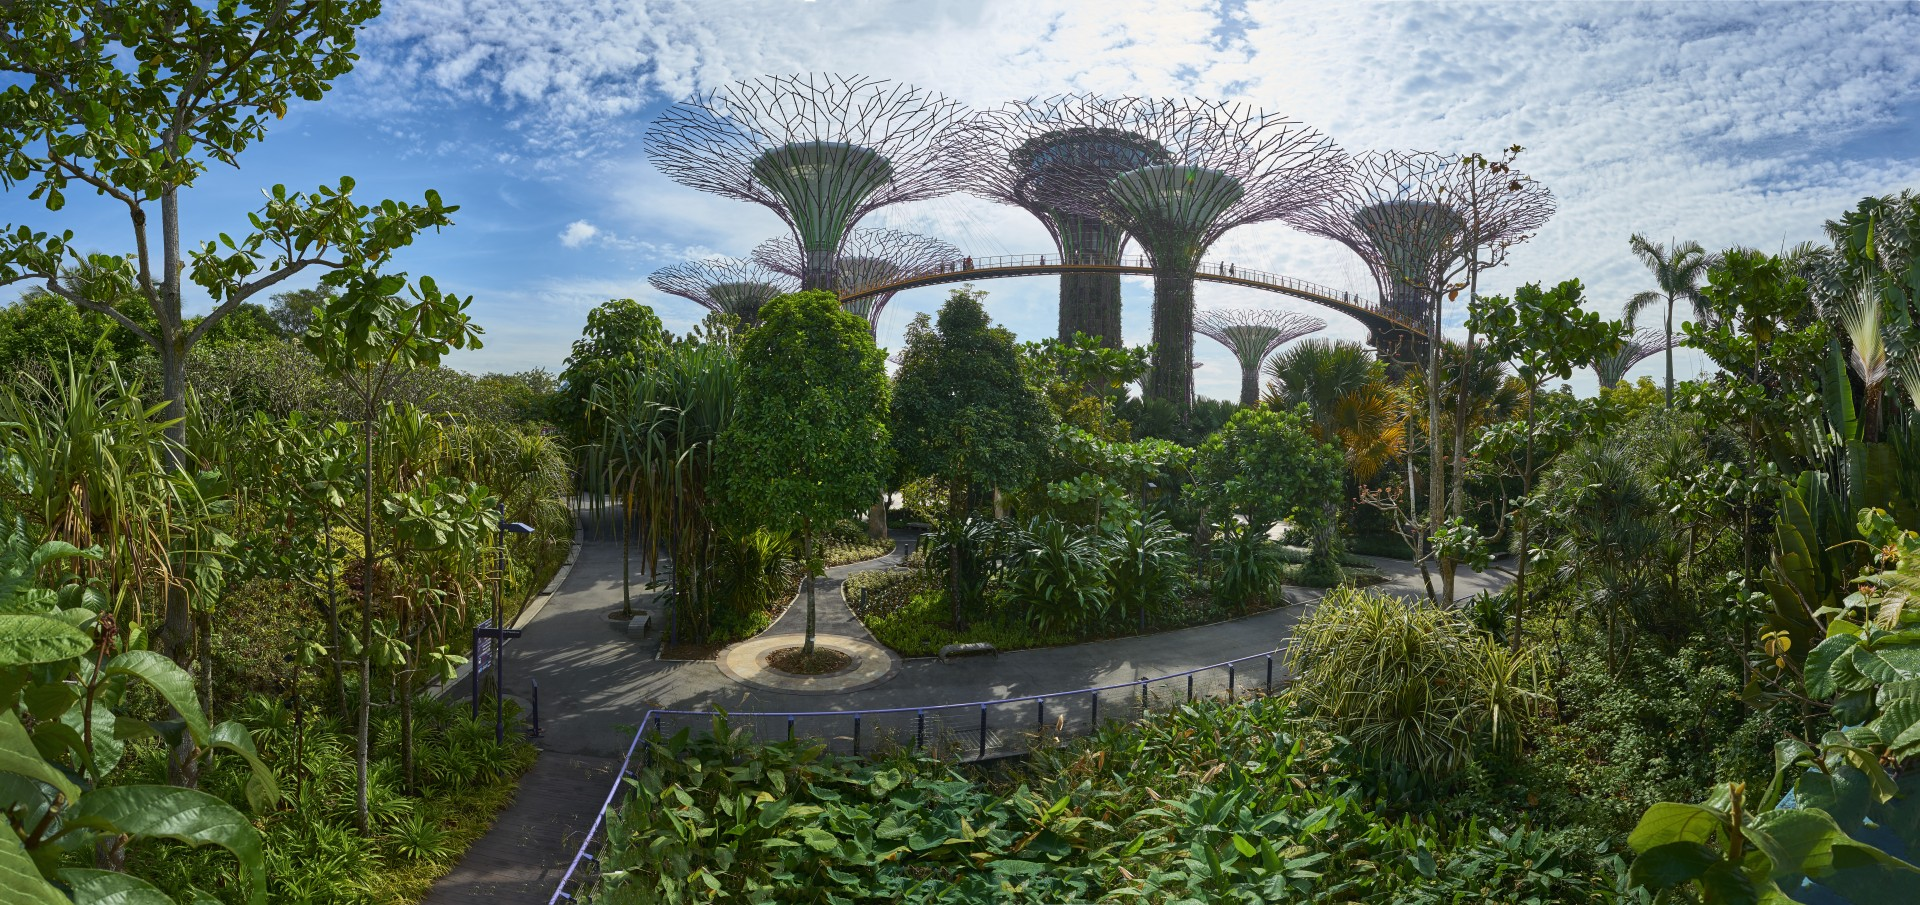 Best of Singapore - Pano gardens by the bay